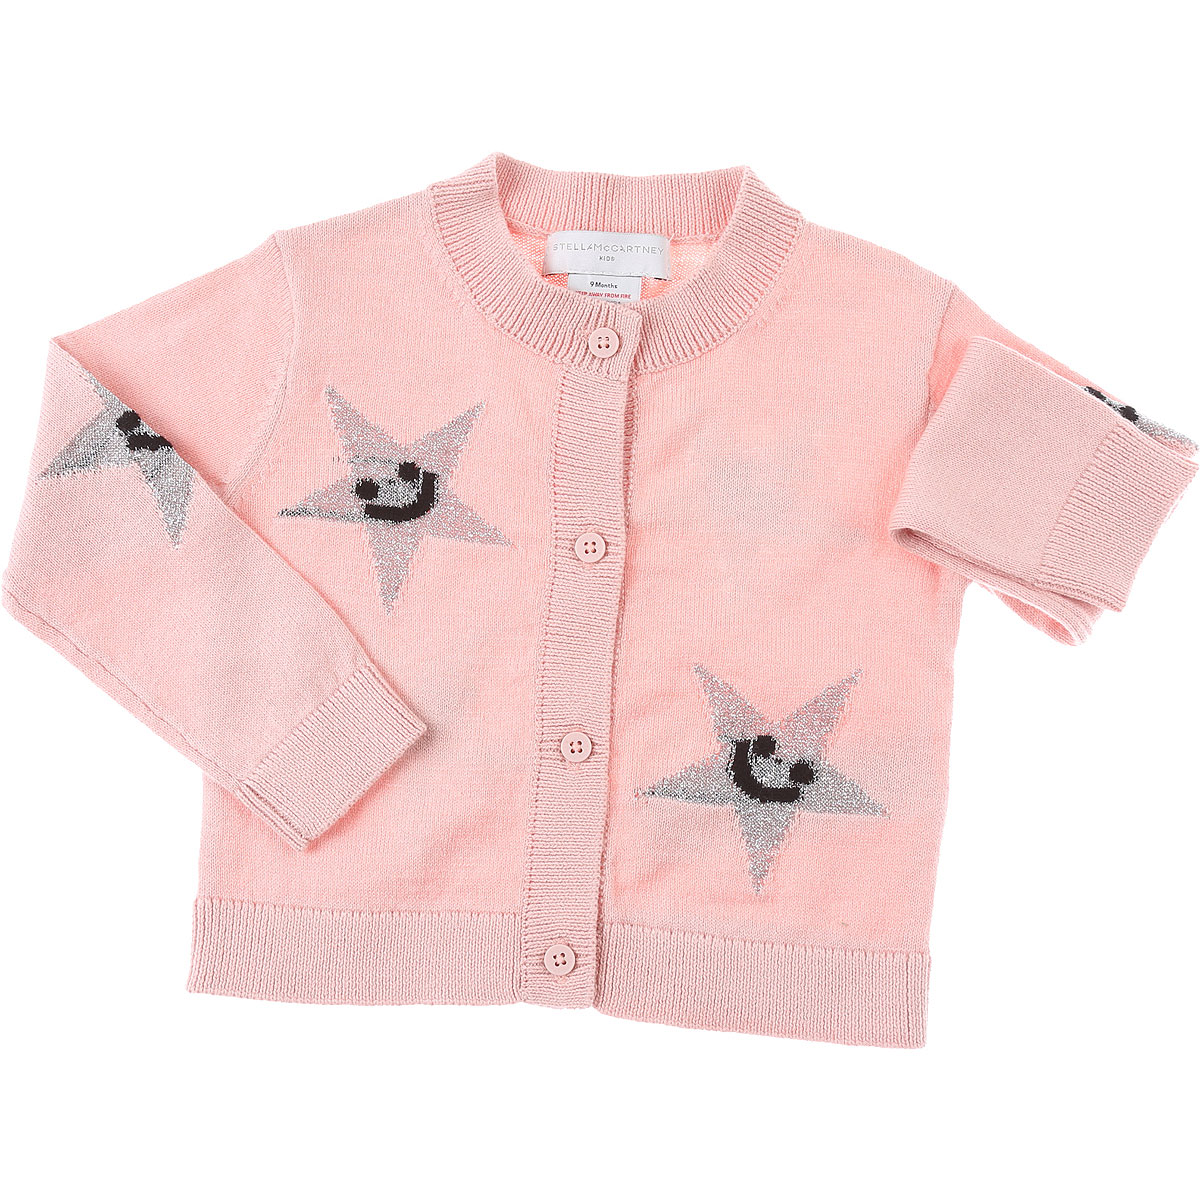 Stella McCartney Baby Sweaters for Girls On Sale, Pink, Cotton, 2019, 12M 18M 2Y 3Y 6M 9M